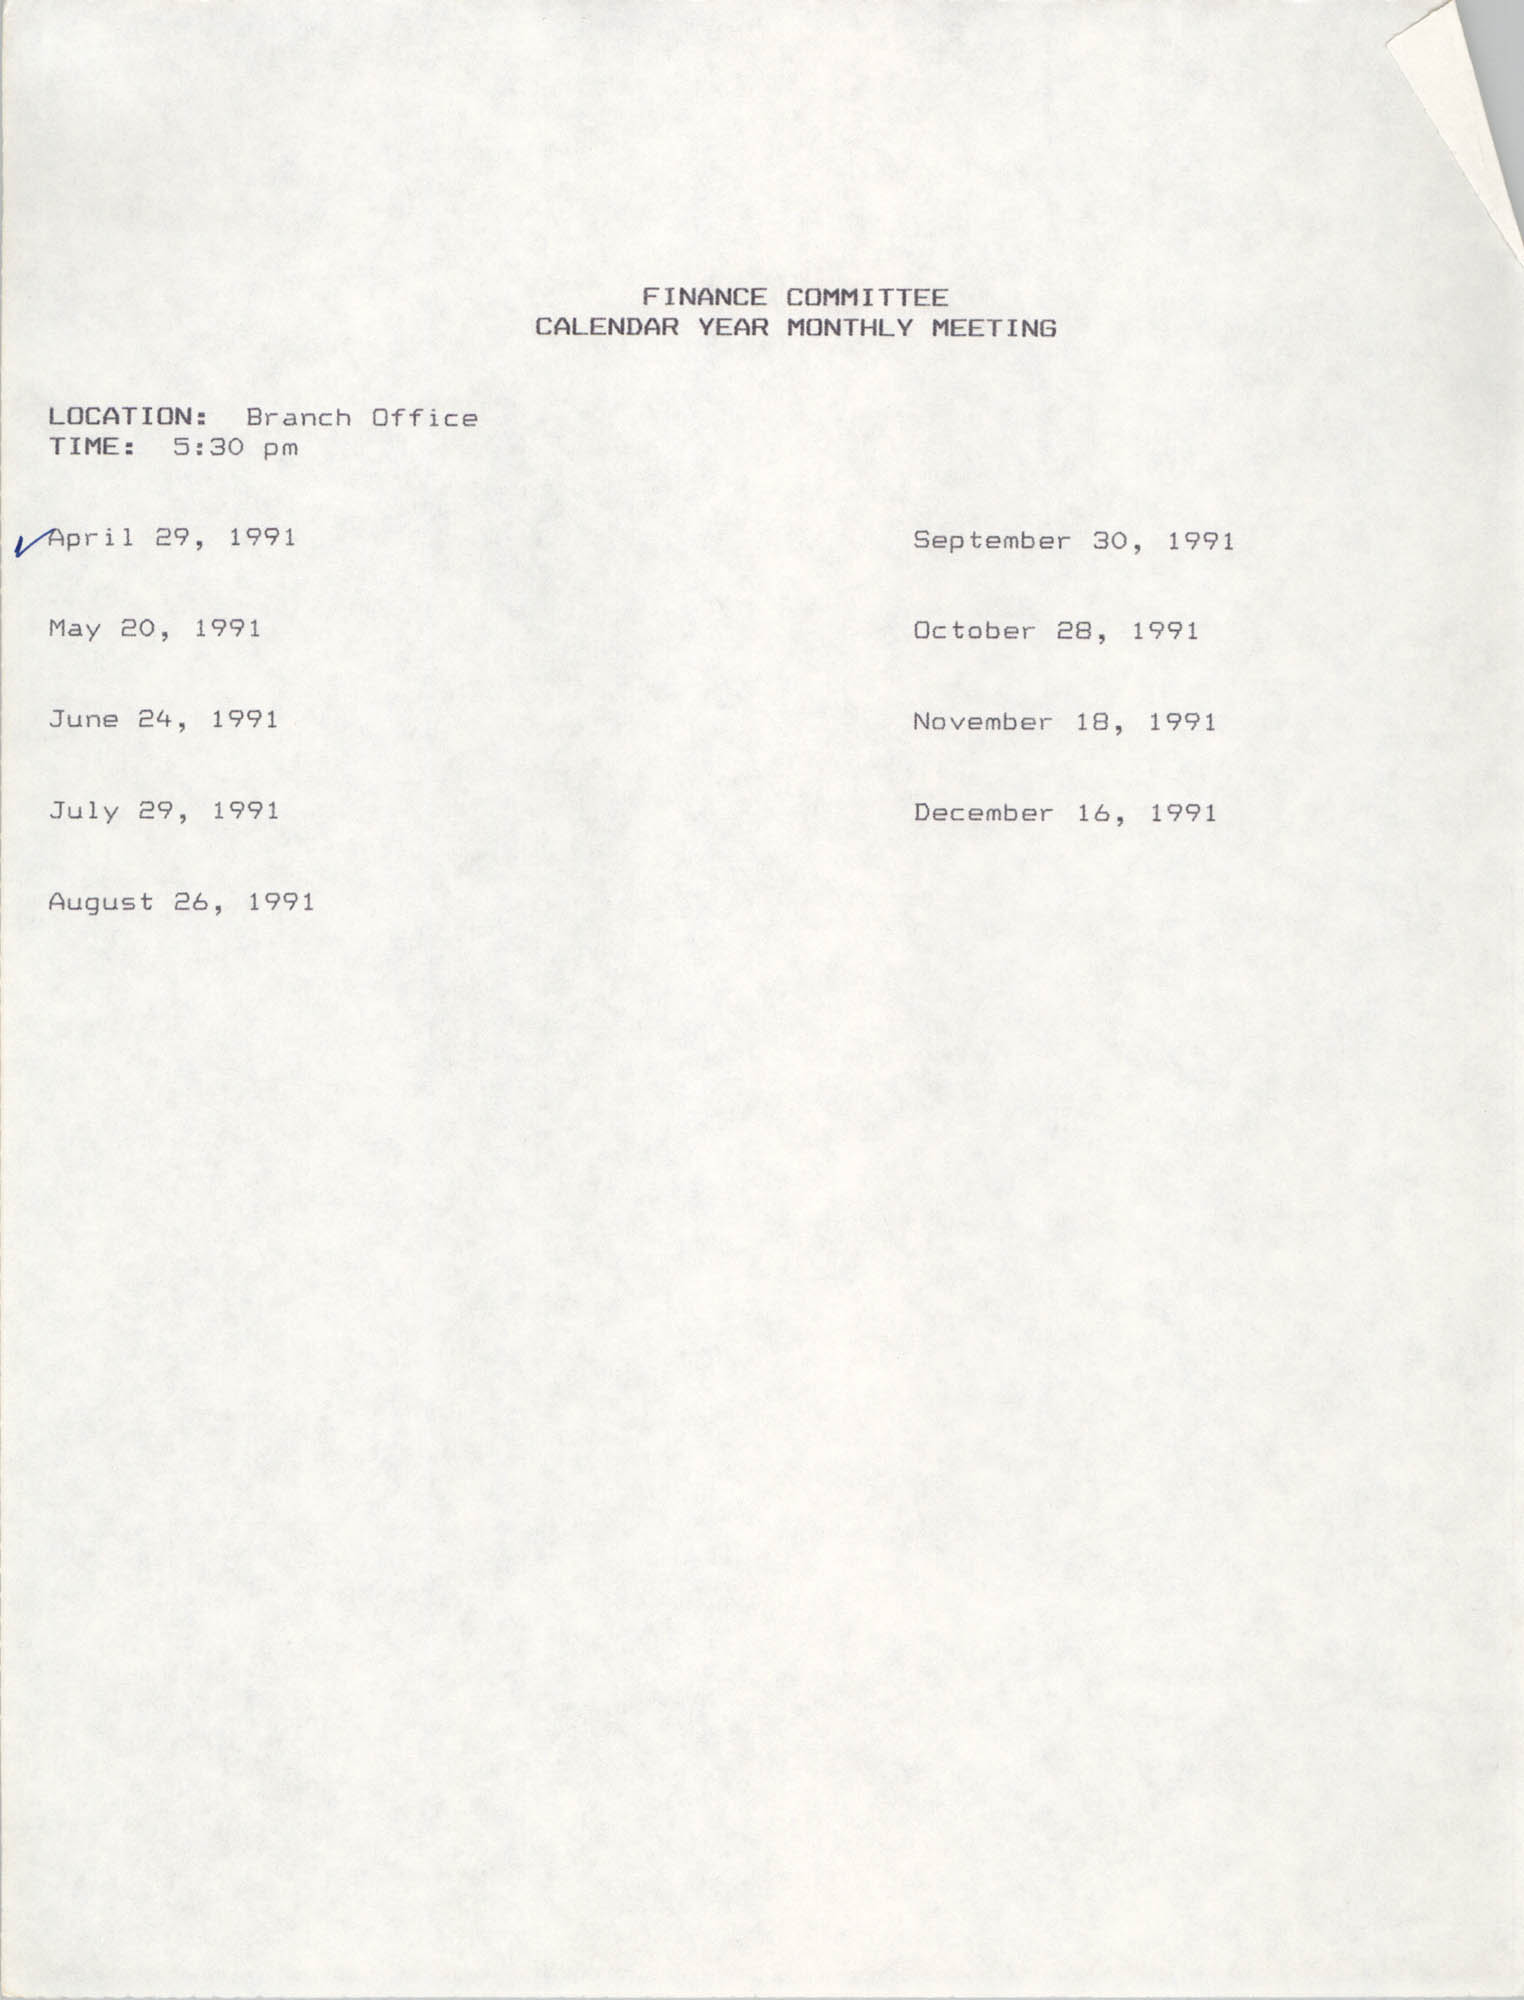 Charleston Branch of the NAACP Finance Committee Monthly Meeting Schedule, 1991